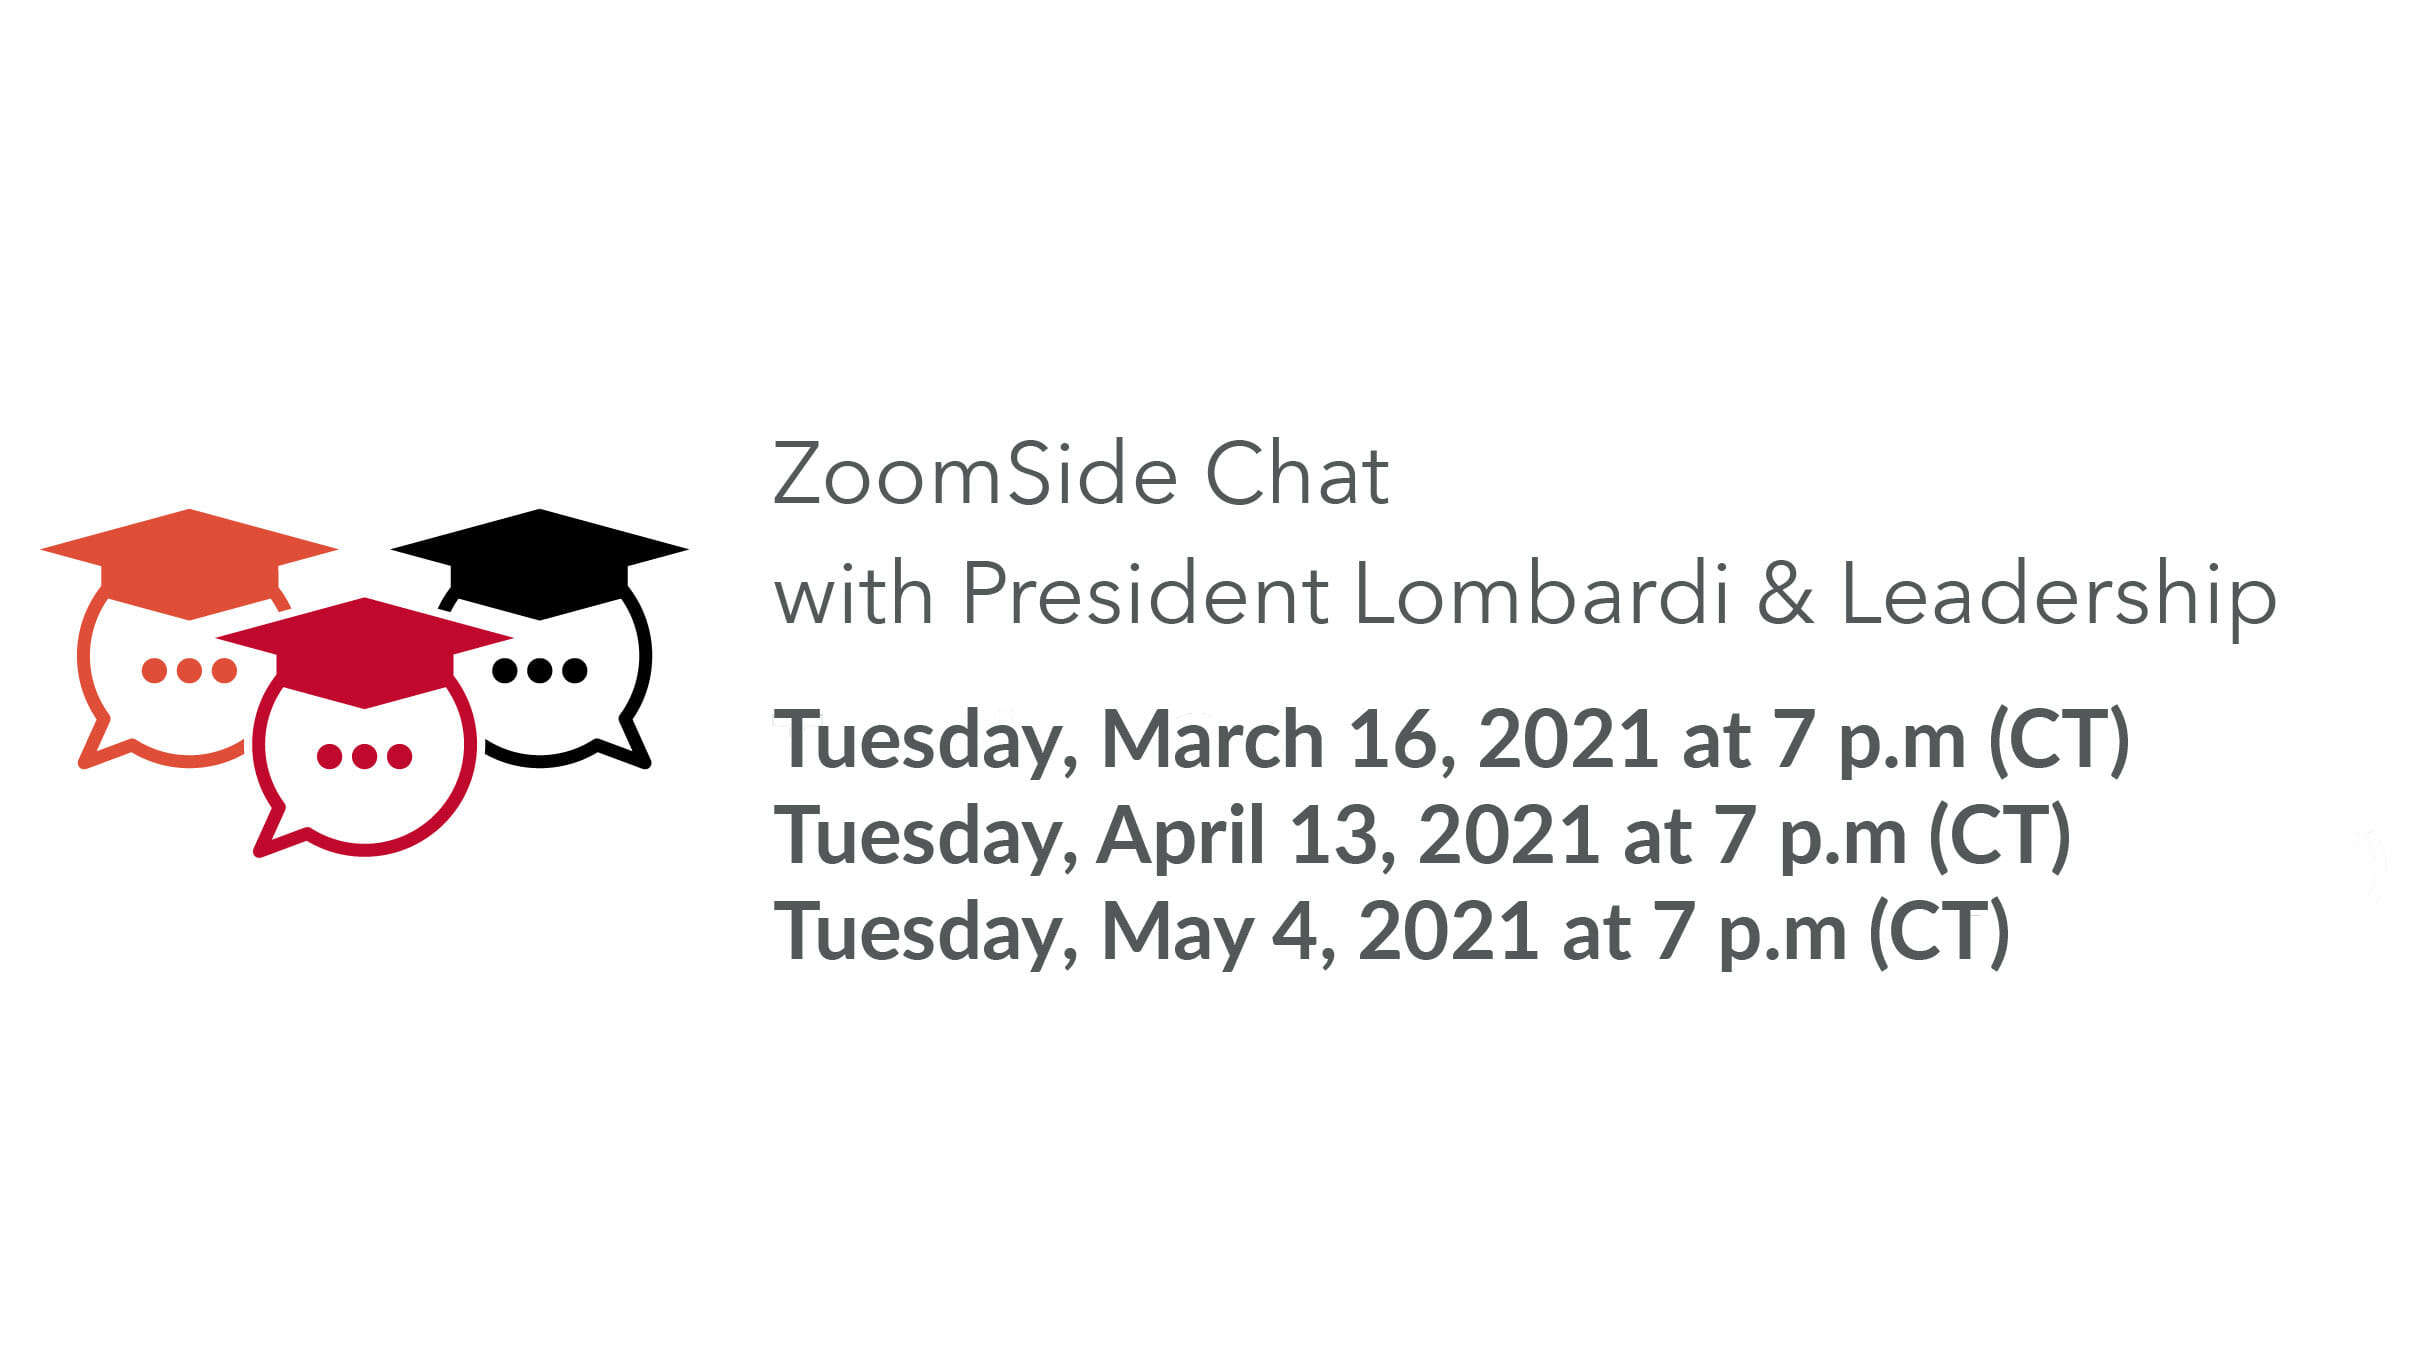 zoomside chats in spring